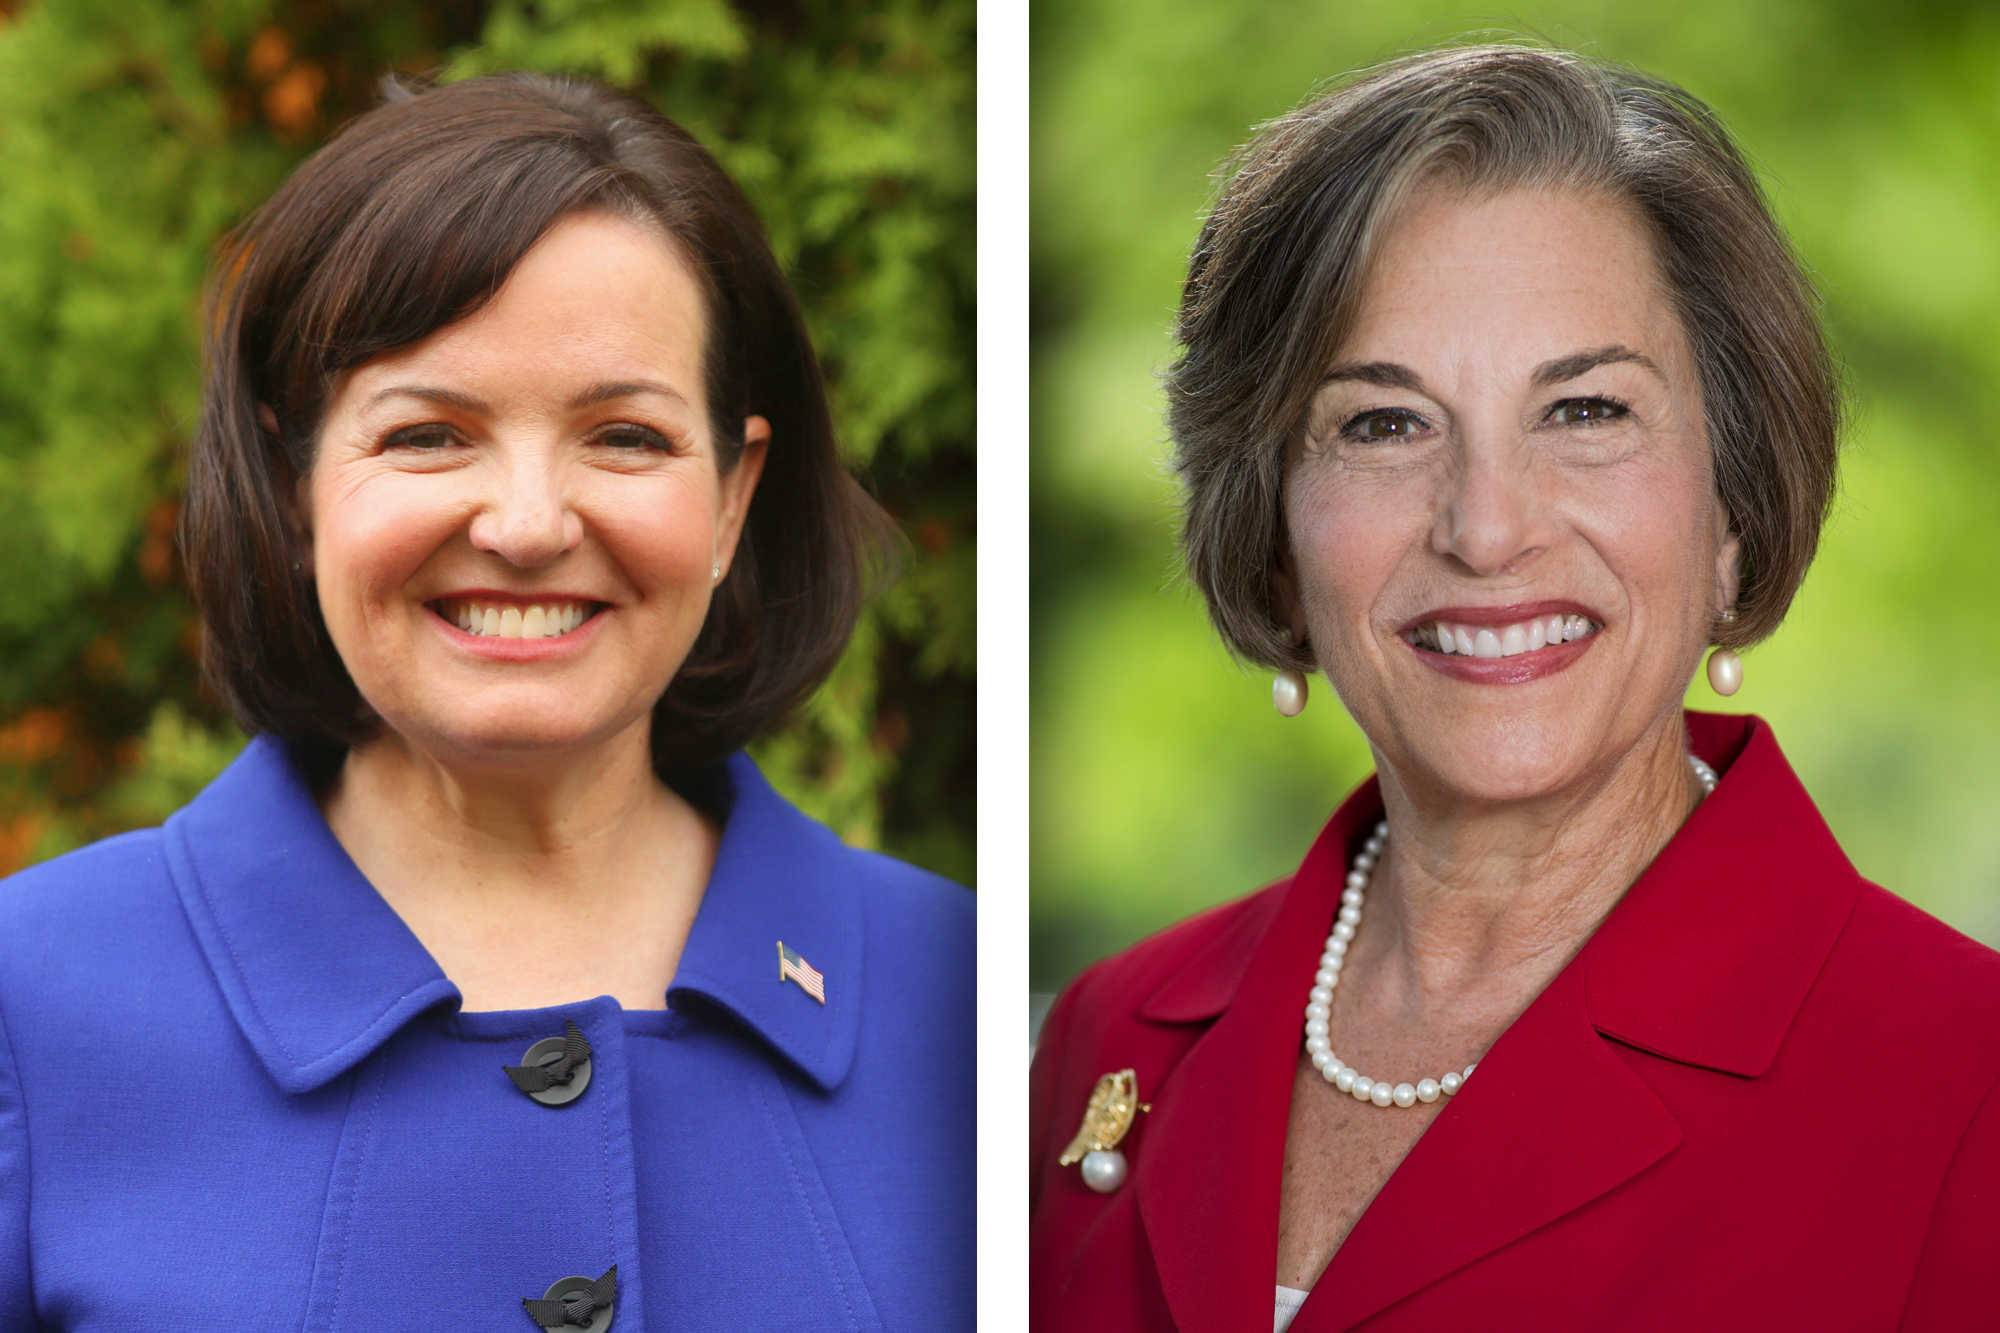 Republican Joan McCarthy Lasonde, left, and Democrat Jan Schakowsky are candidates for the 9th Congressional District seat.